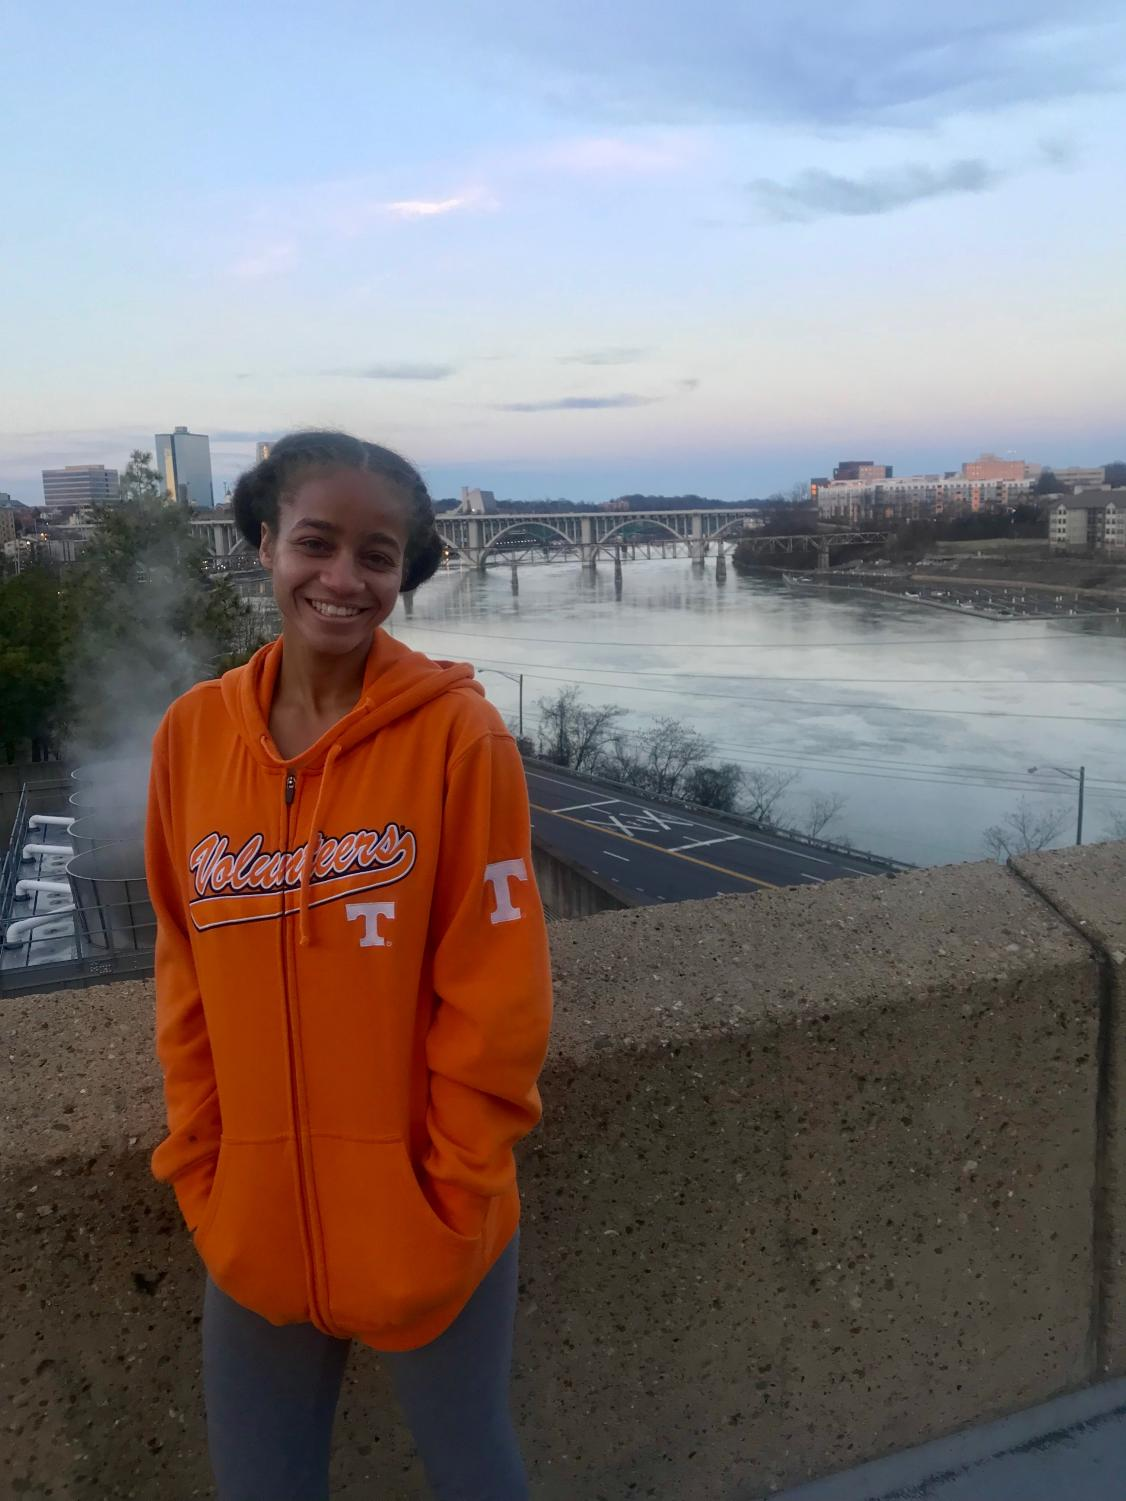 Washington showing her Volunteers pride in Knoxville, Tennessee.